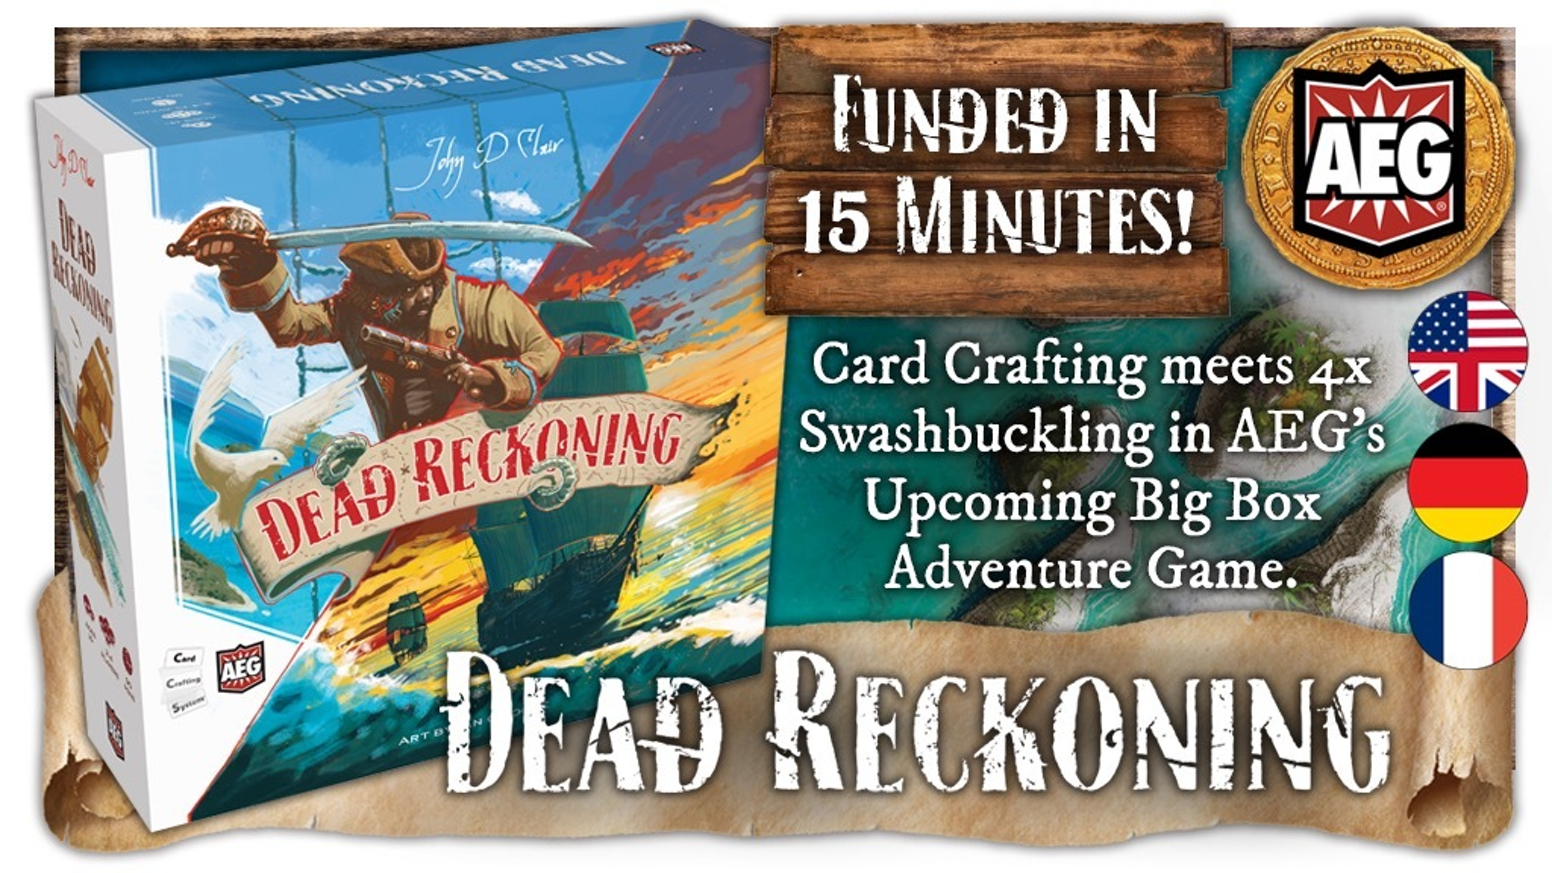 4x meets card crafting in John D Clair's next masterpiece! Immersive high seas action where you choose your path to victory.